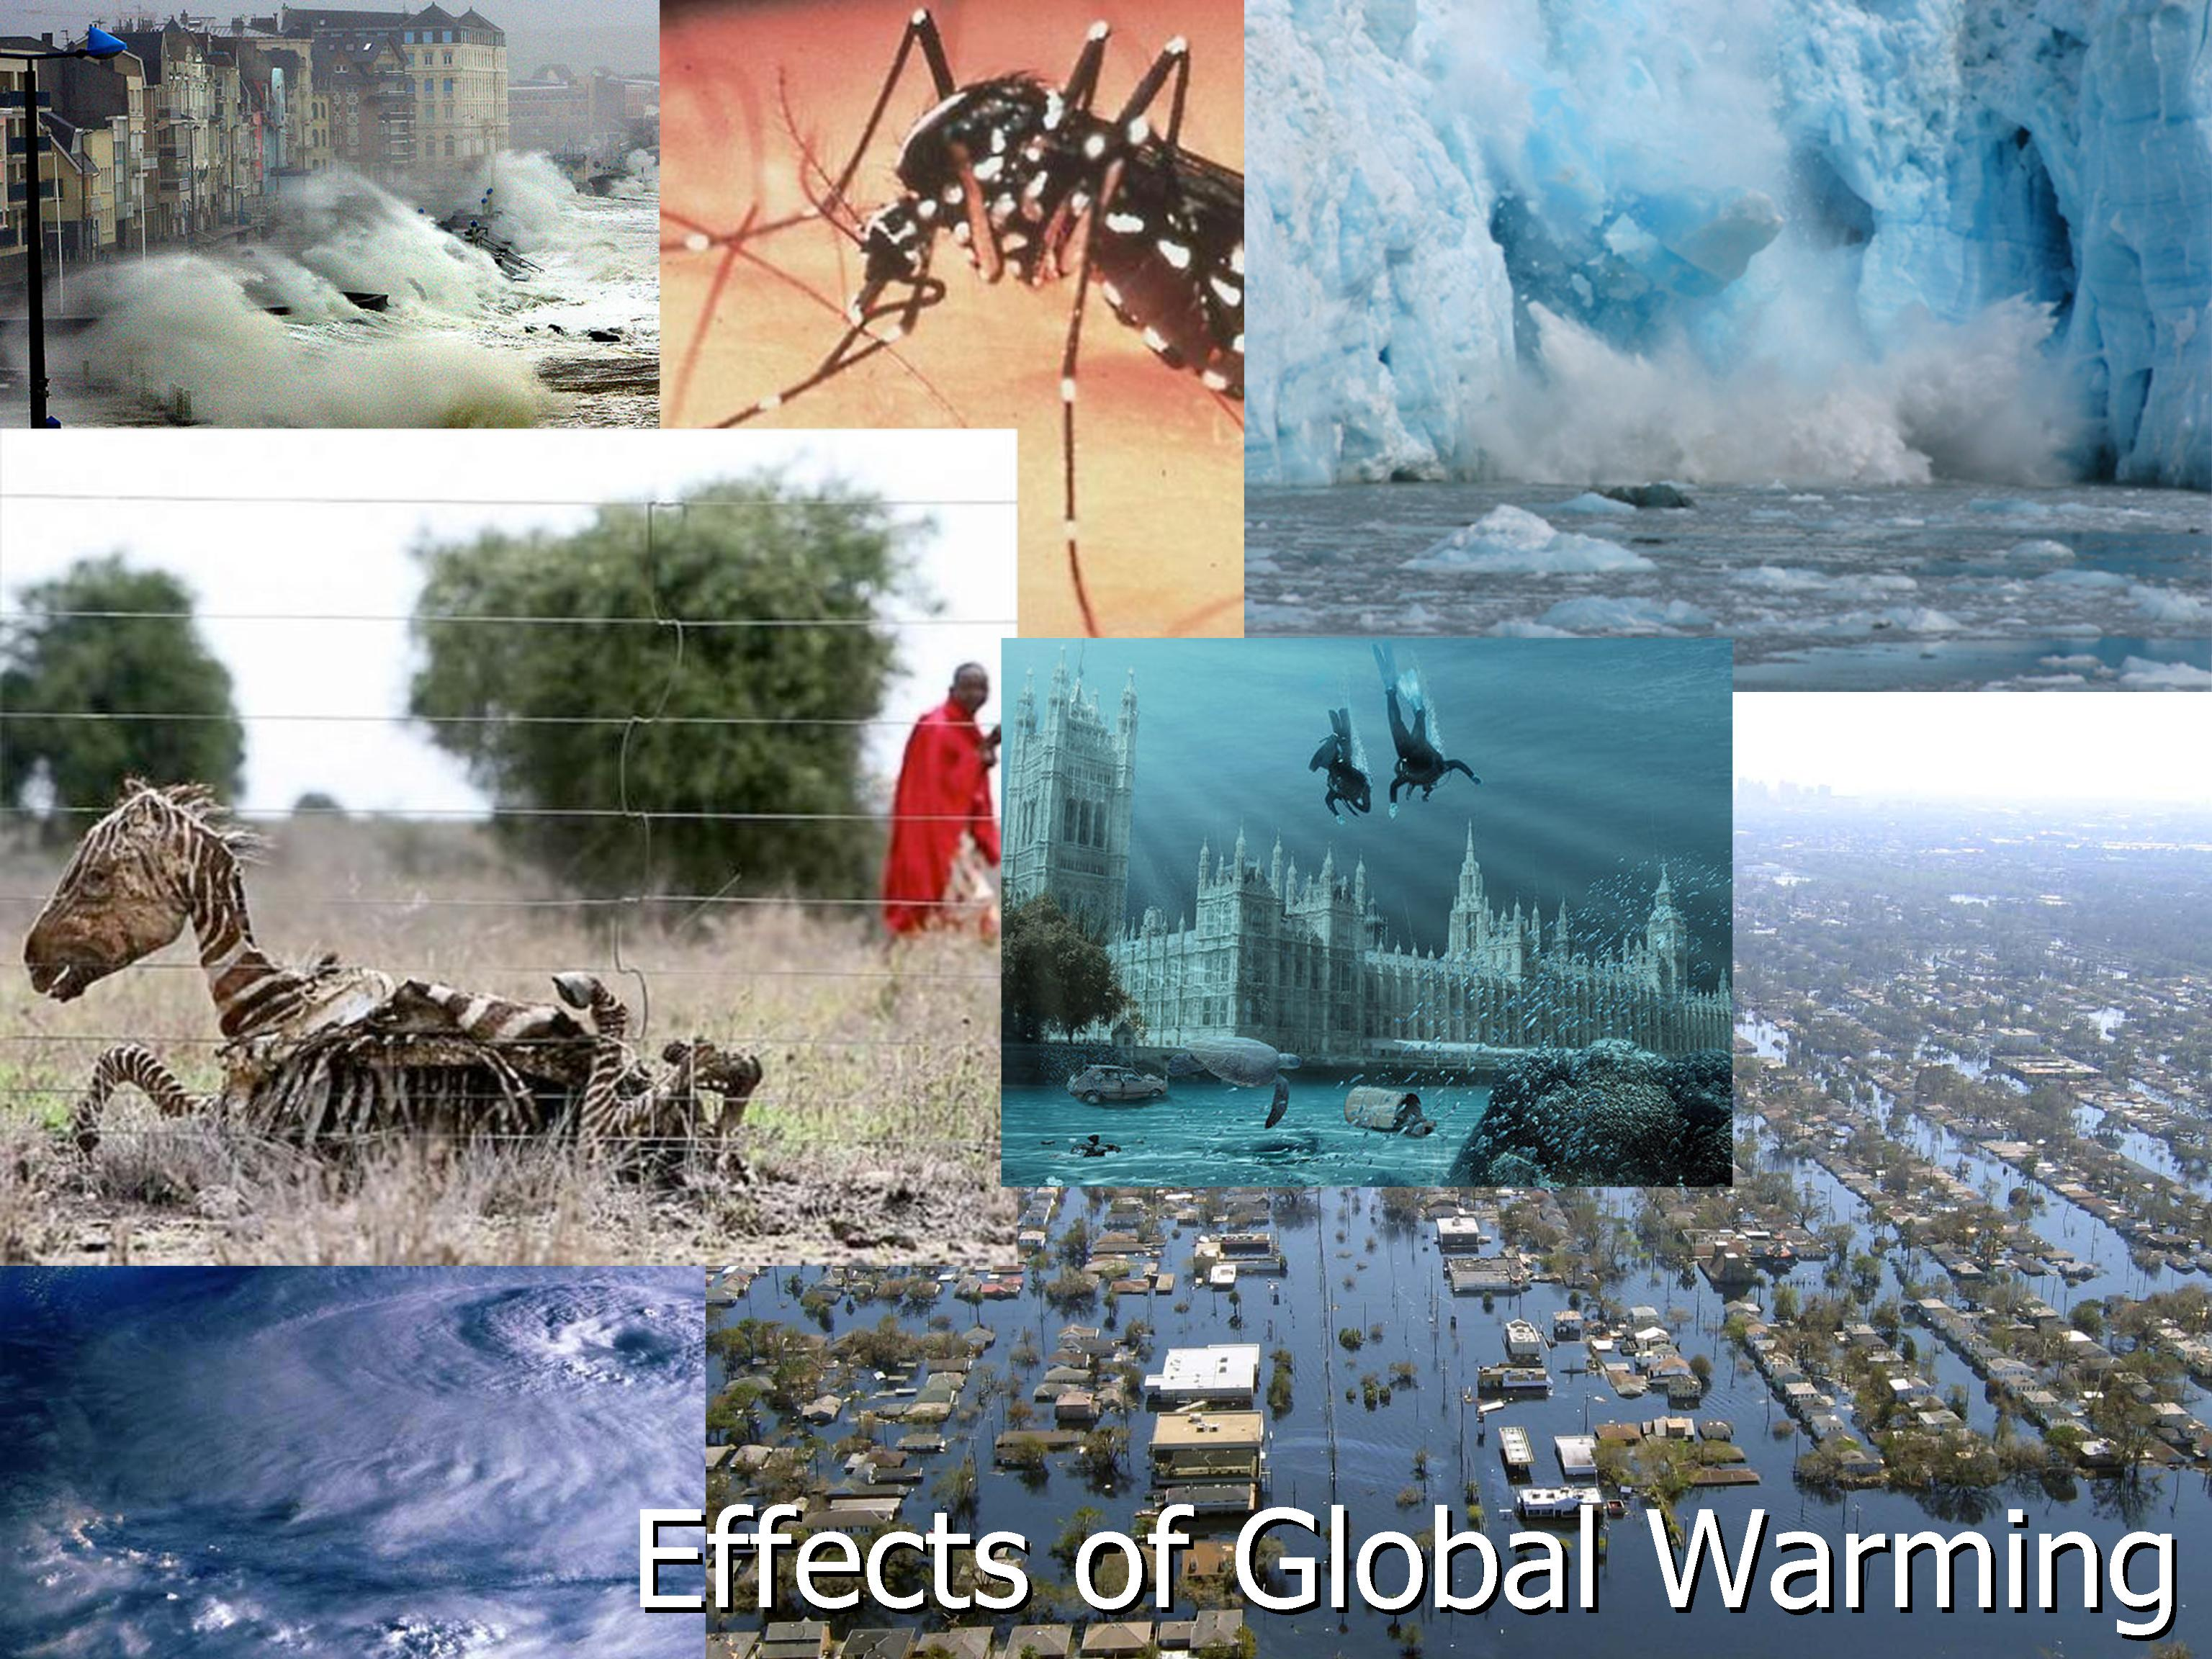 consequence global warming essay global warming causes essay essays on deforestation and global warming essay helpessays on deforestation and global